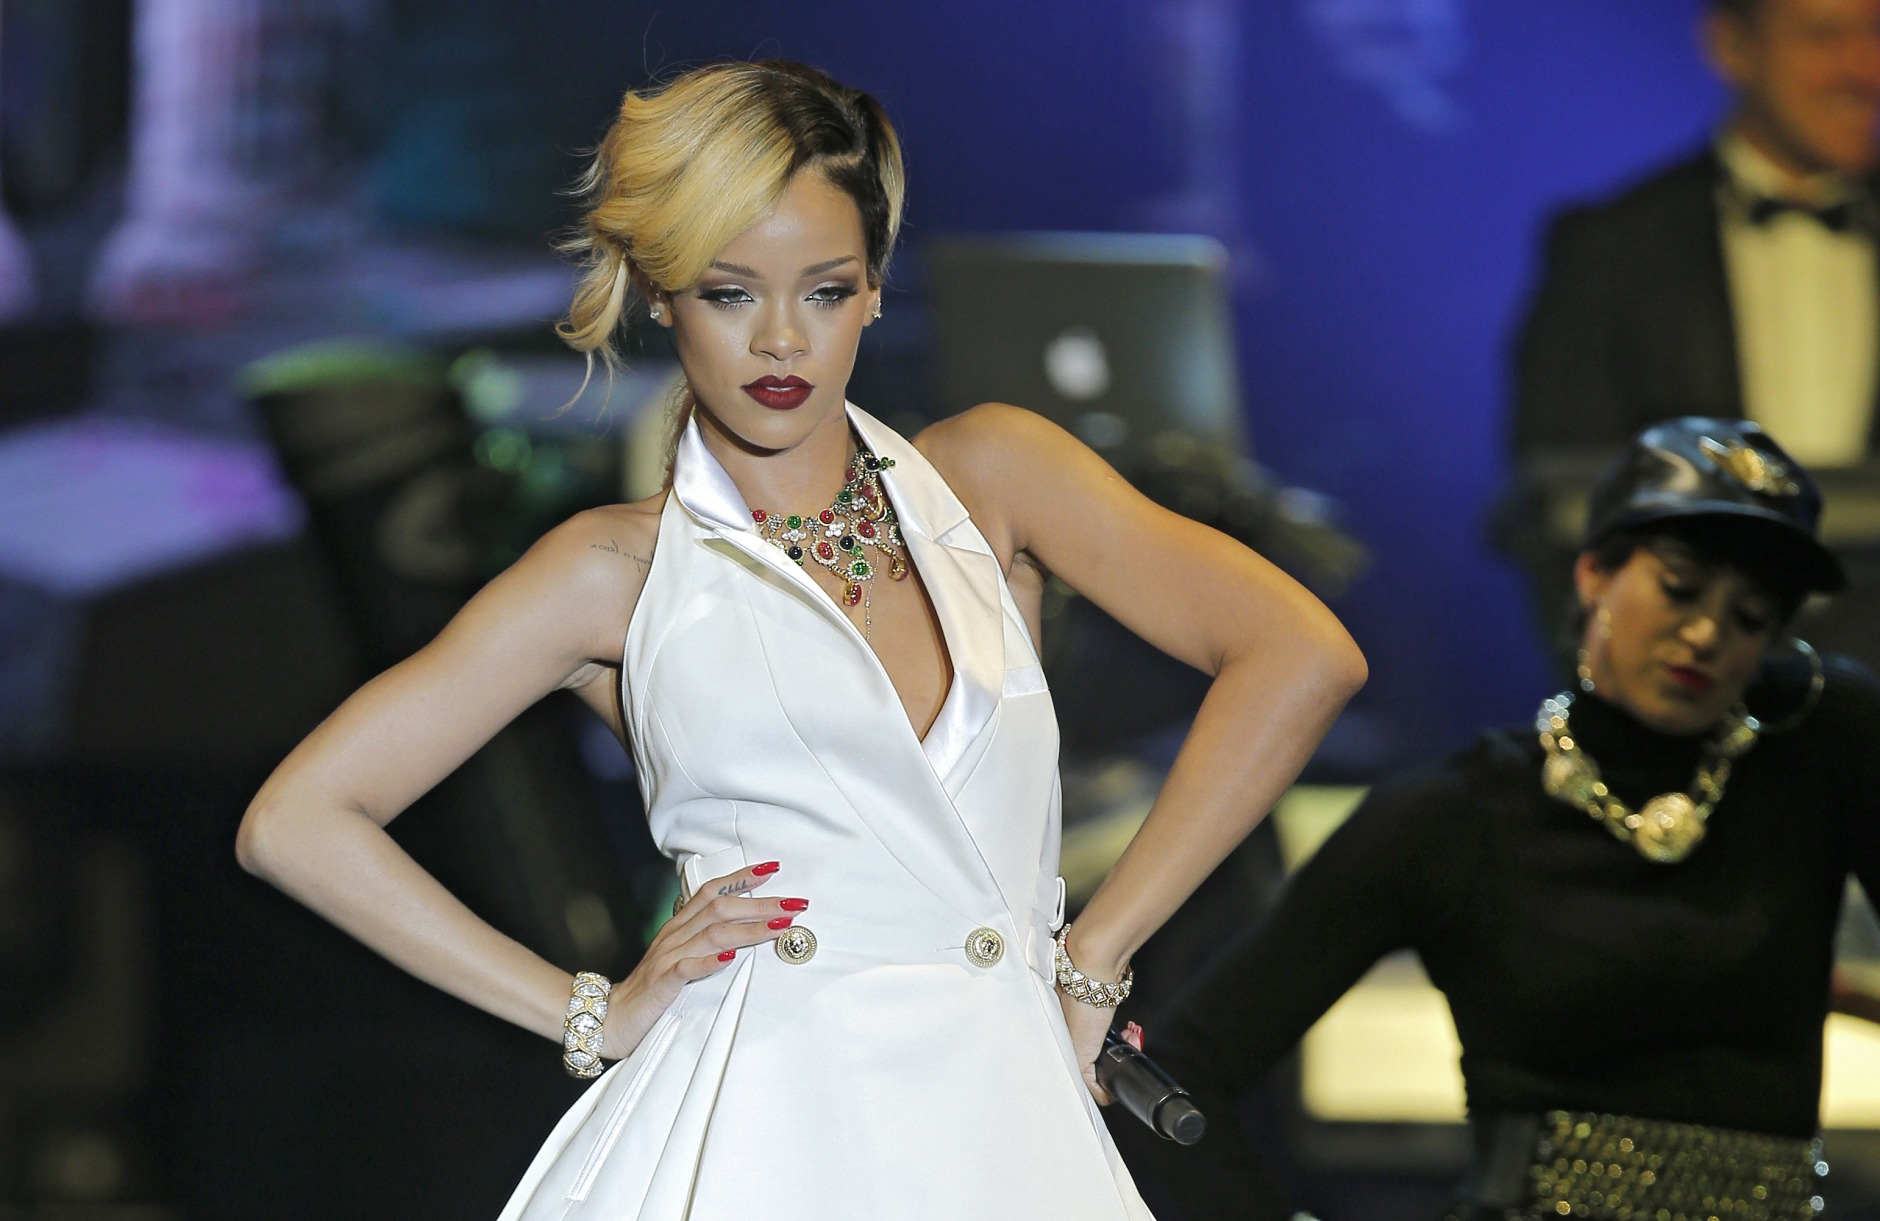 Ap Photos A Look At Rihanna S Fashion And Style Wtop